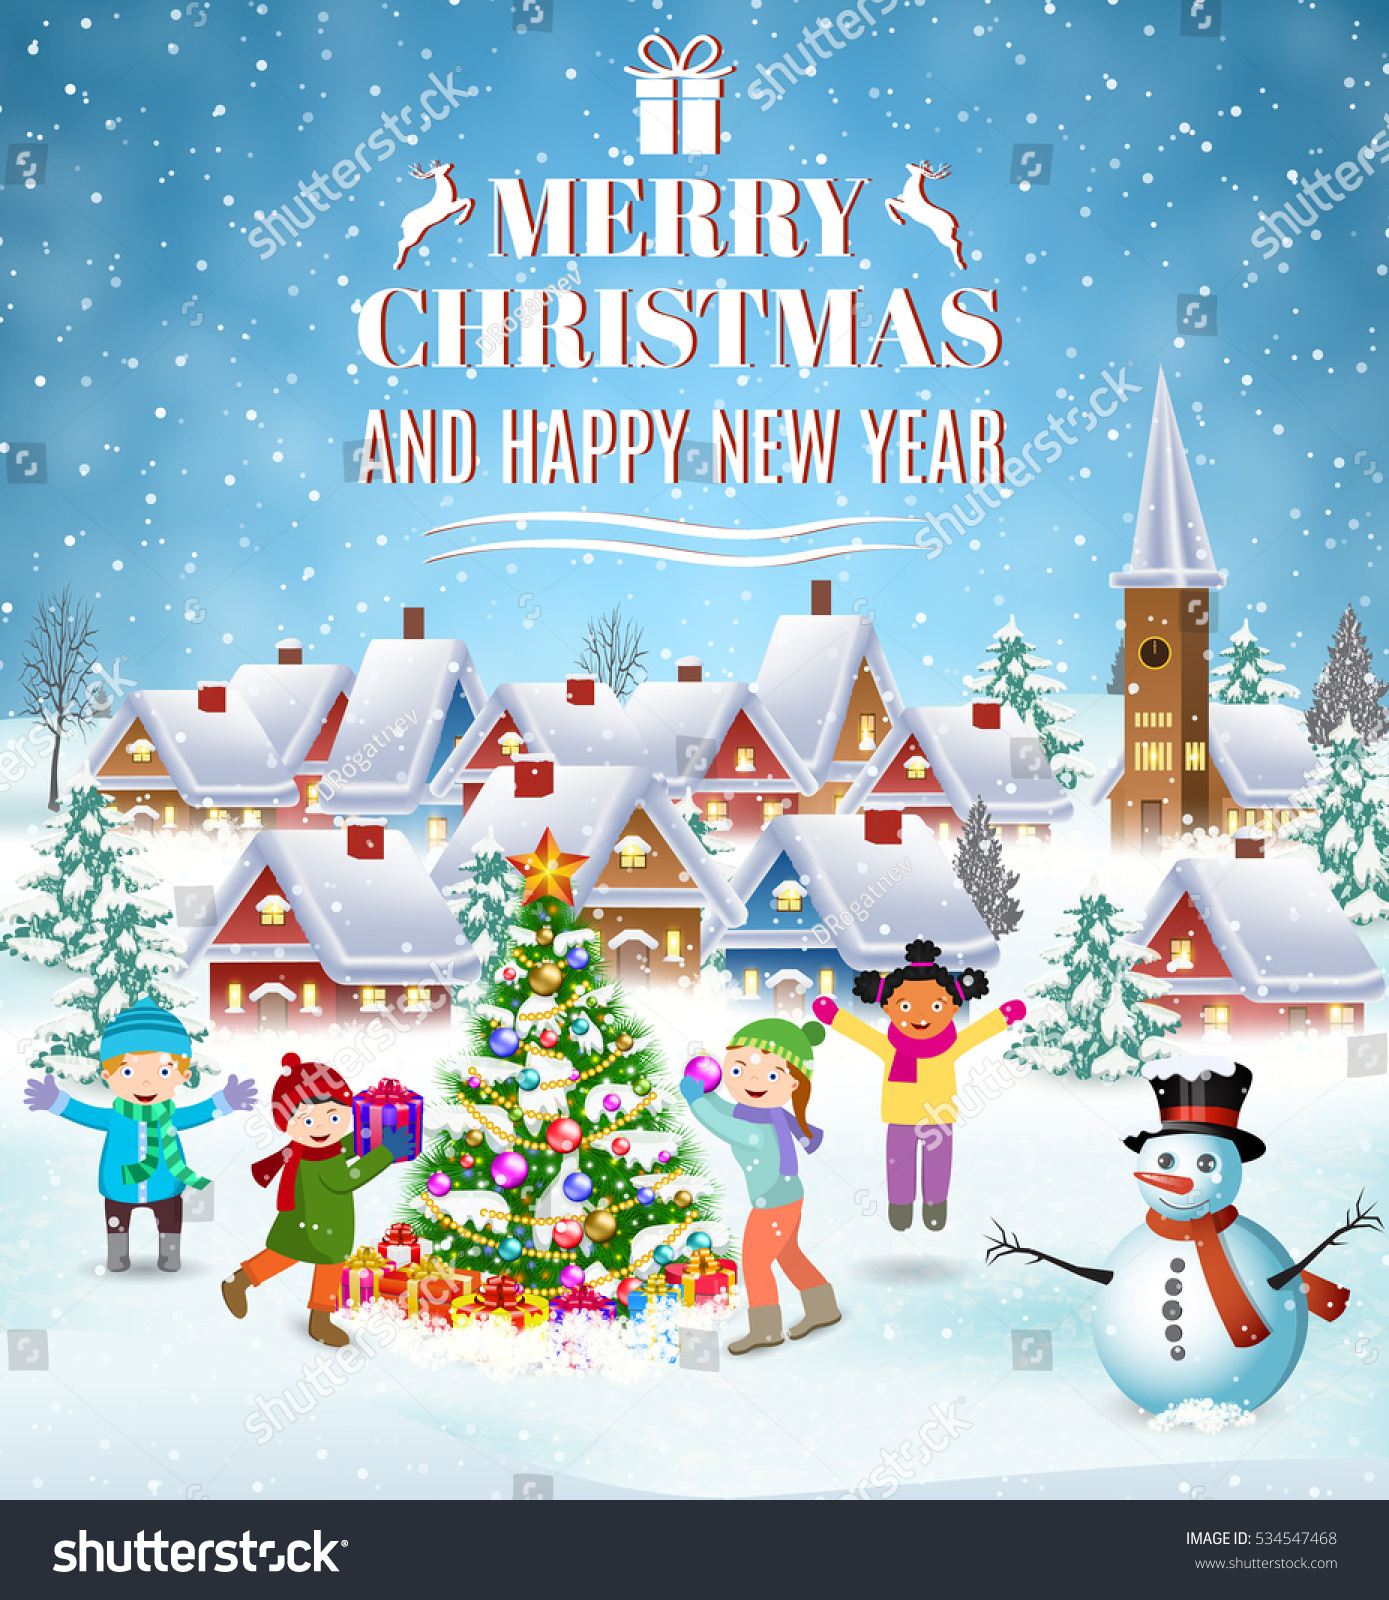 Happy New Year Merry Christmas Greeting Stock Illustration 534547468